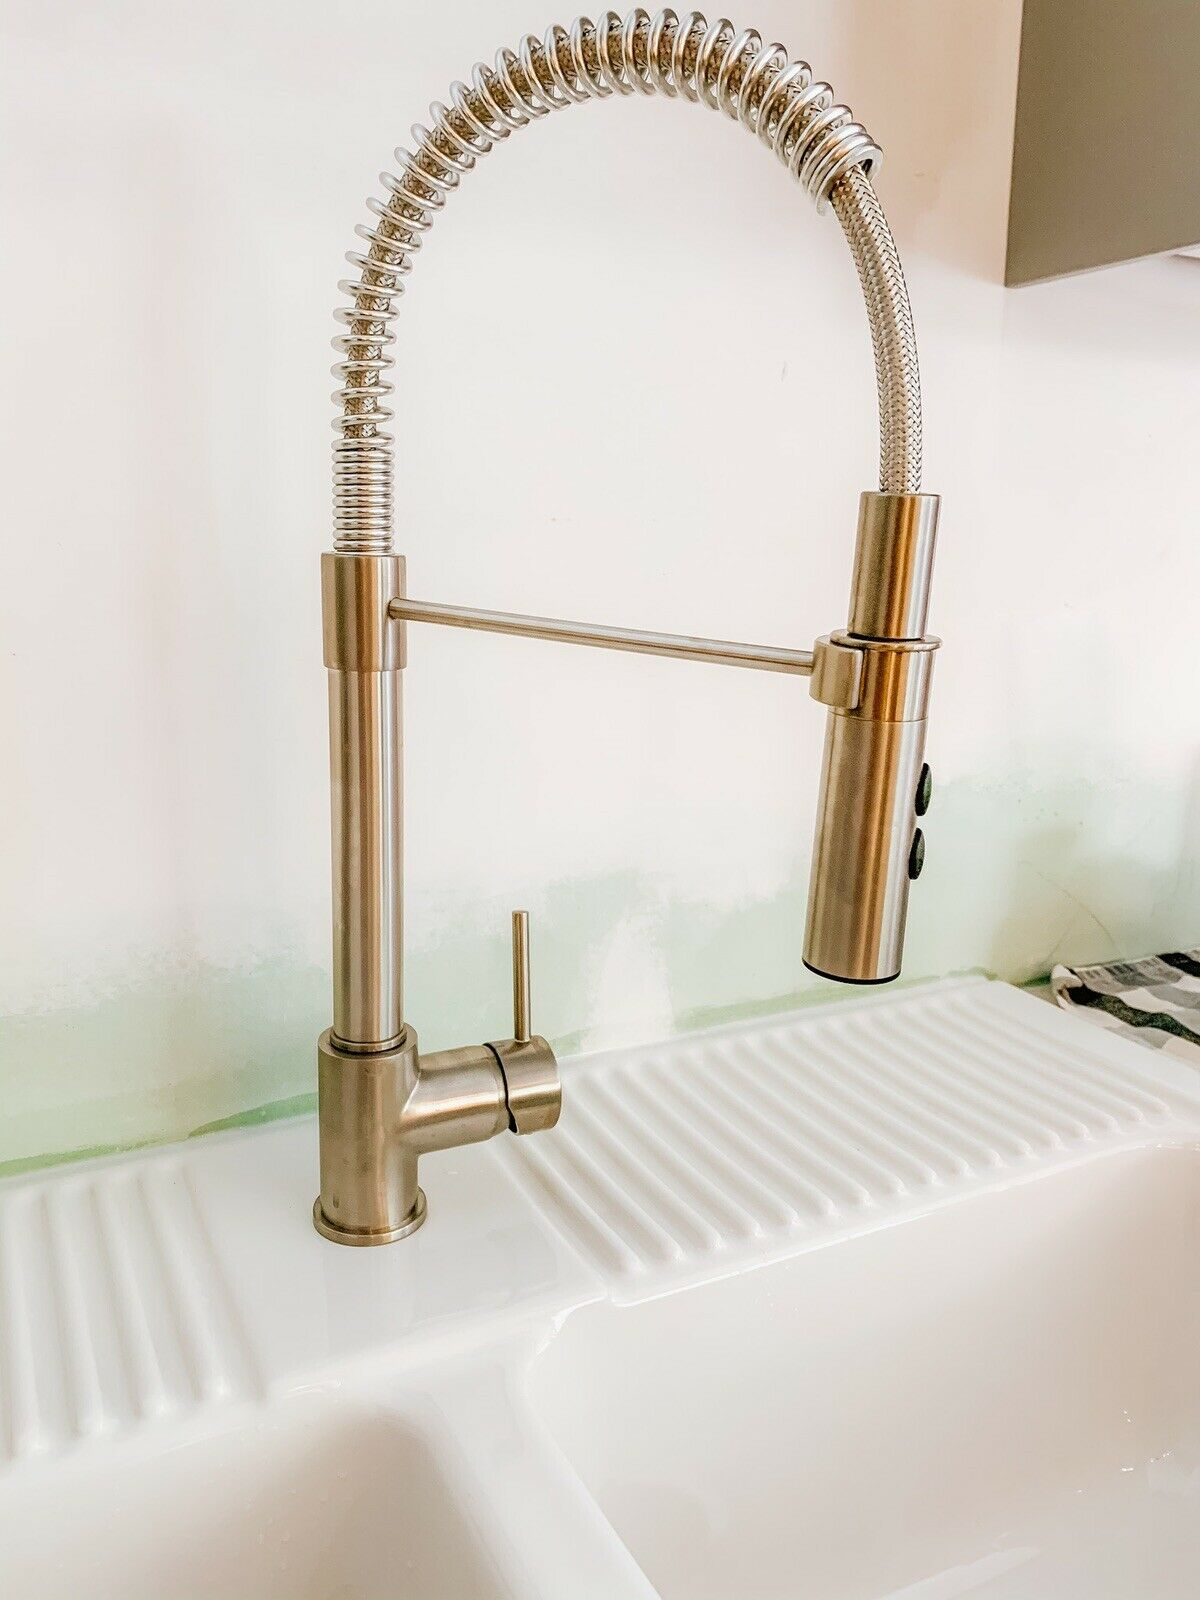 Ikea Vimmern Contemporary Single Handle Handspray Stainless Steel Kitchen Faucet For Sale Online